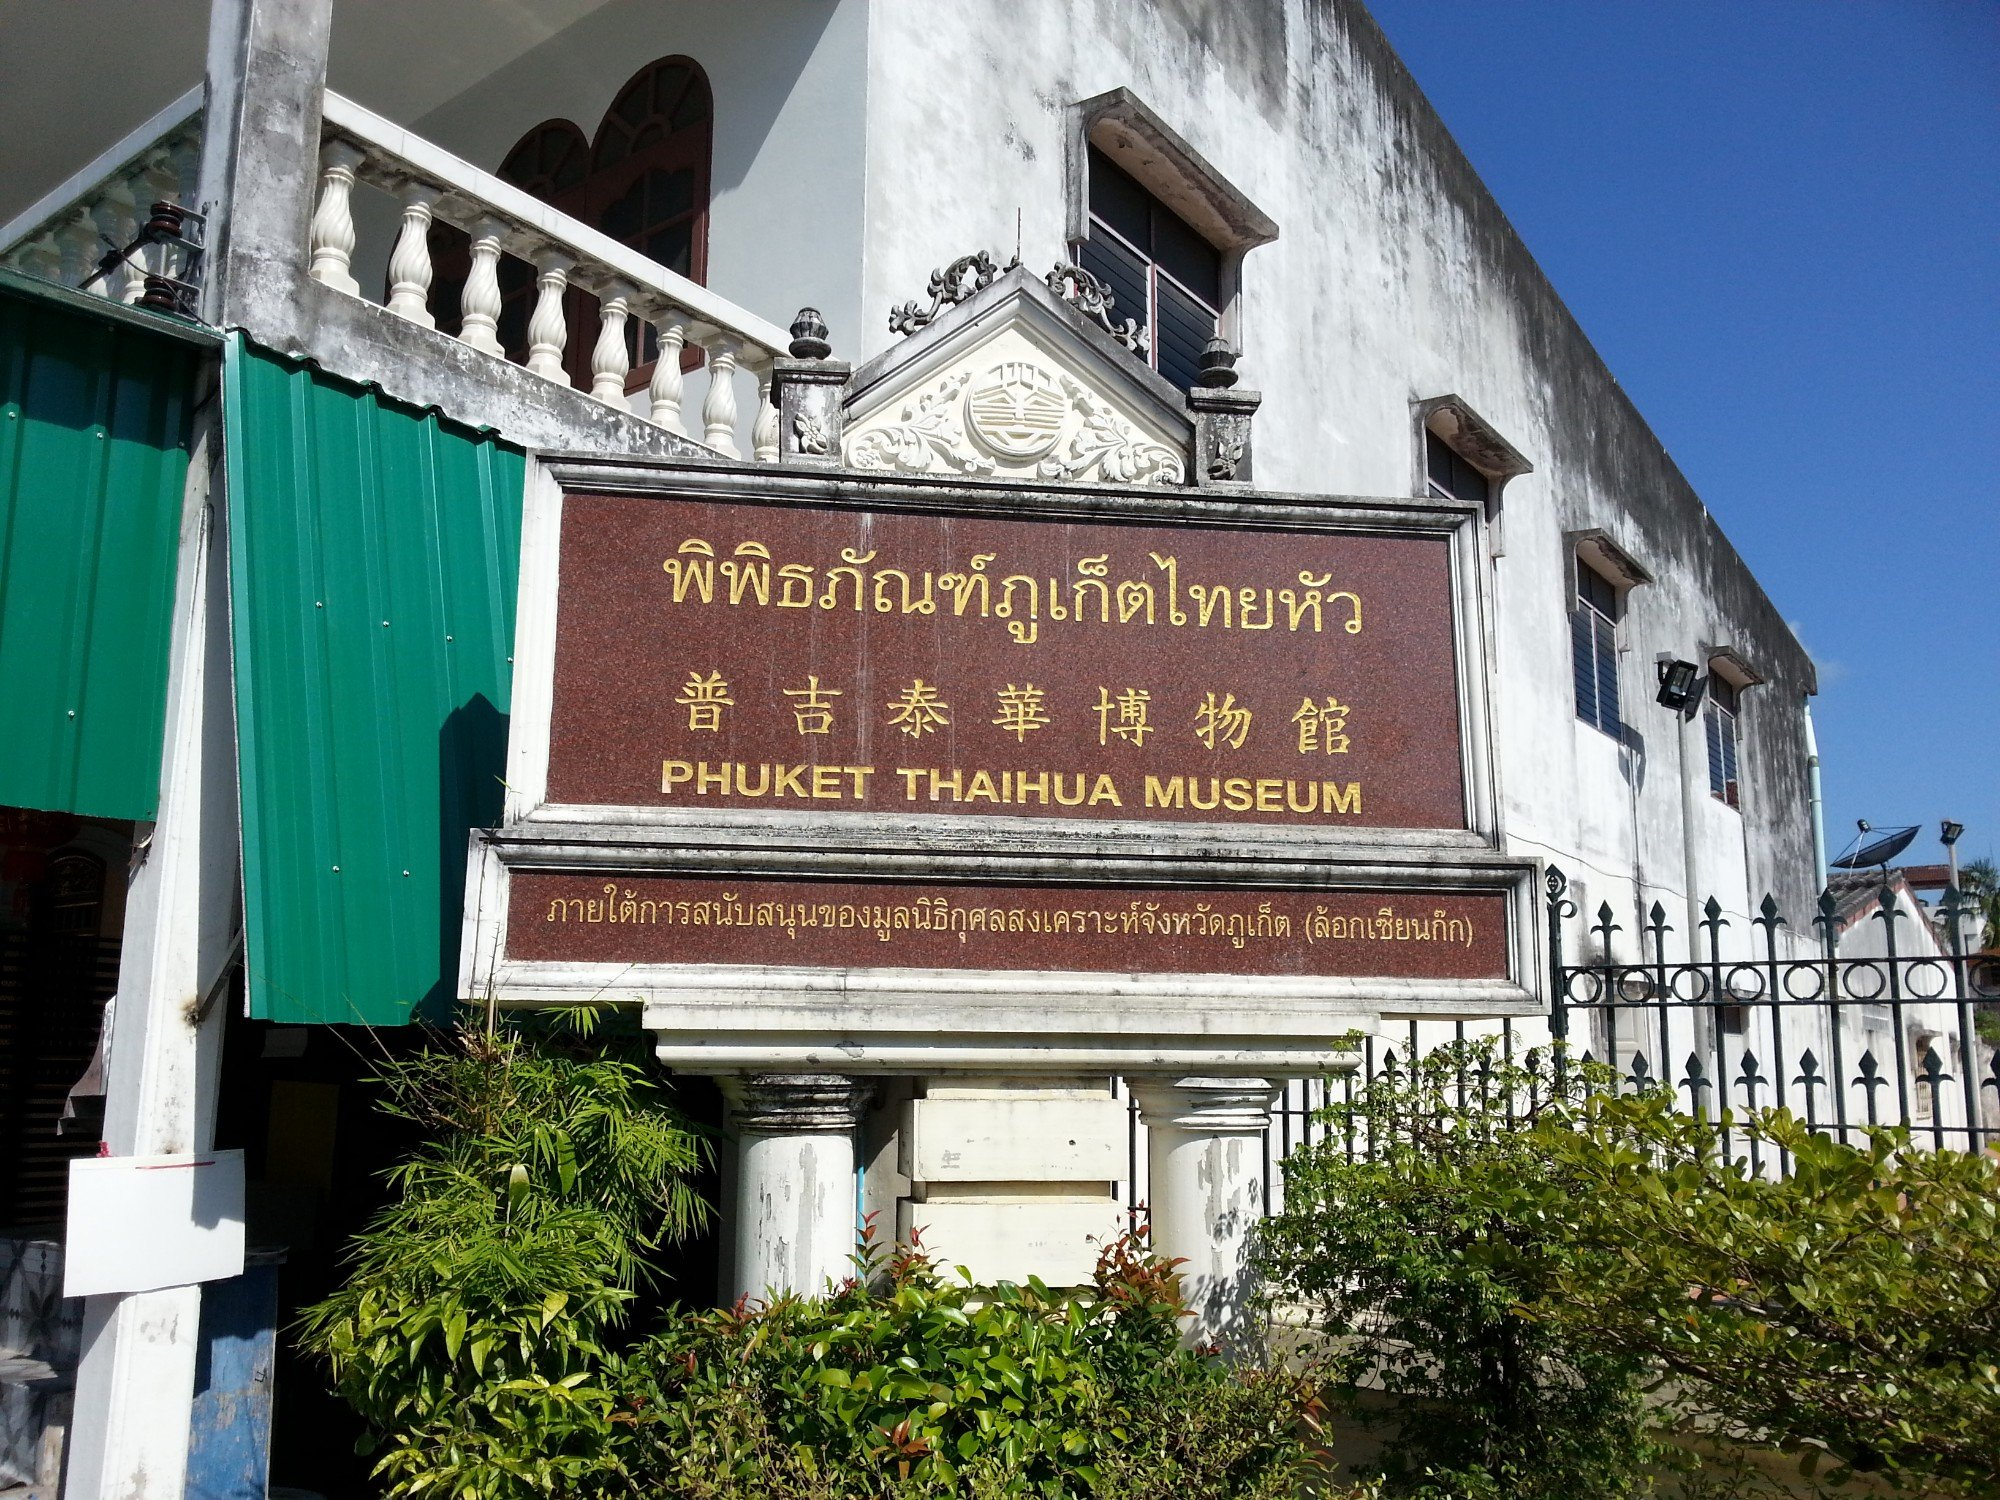 Thai Hua Museum in Phuket